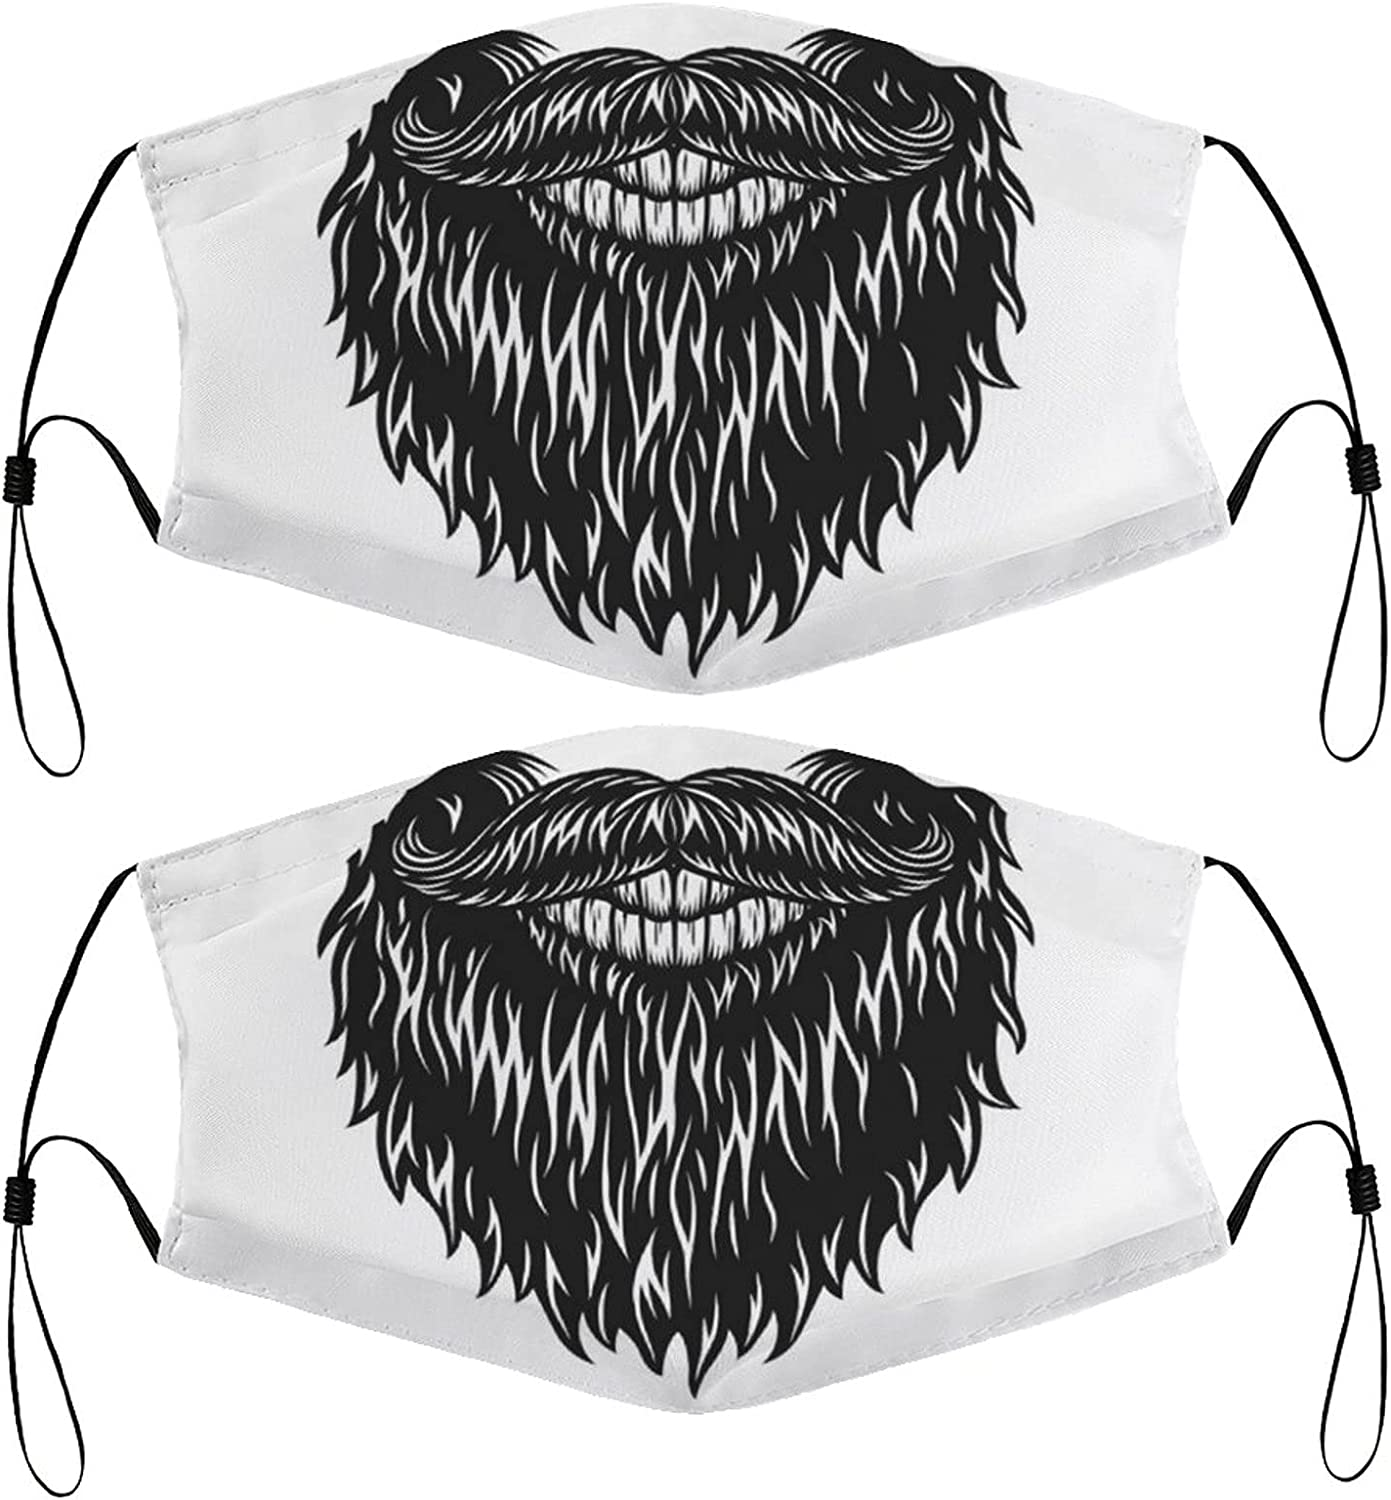 Costume Beard Kids Face Masks Set of 2 with 4 Filters Washable Reusable Breathable Black Cloth Bandanas Scarf for Unisex Boys Girls